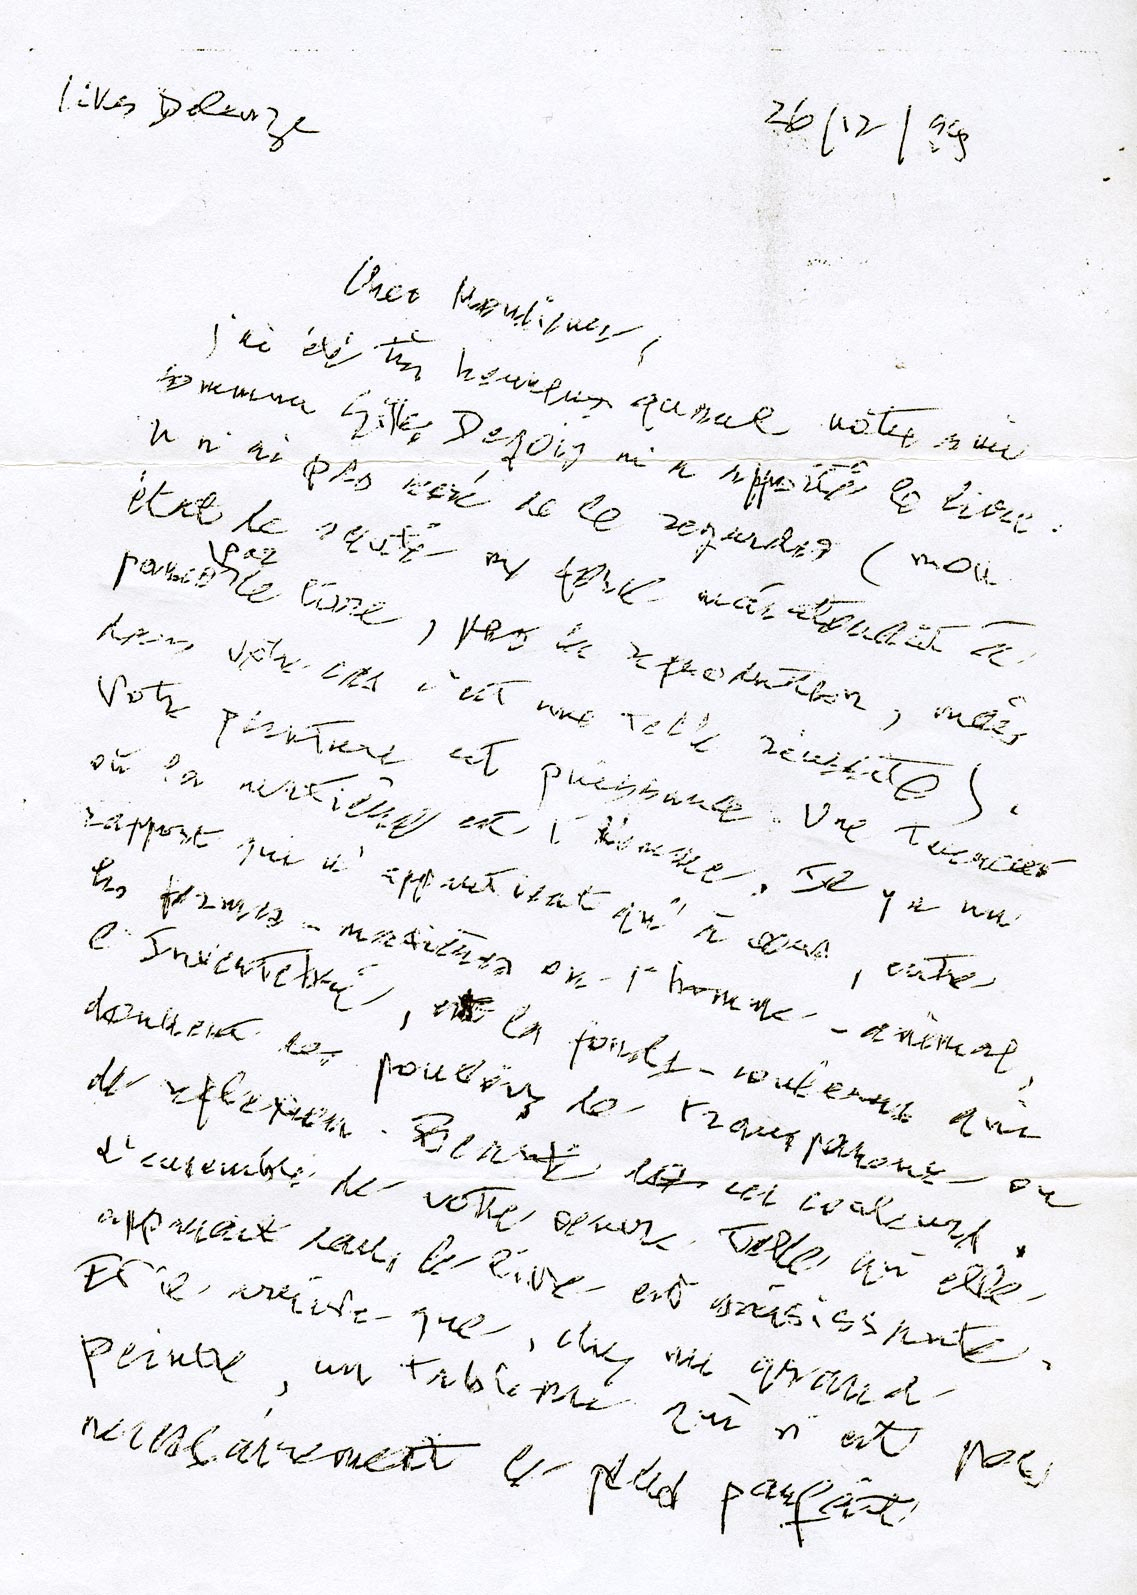 letter addressed by Gilles Deleuze to Dado